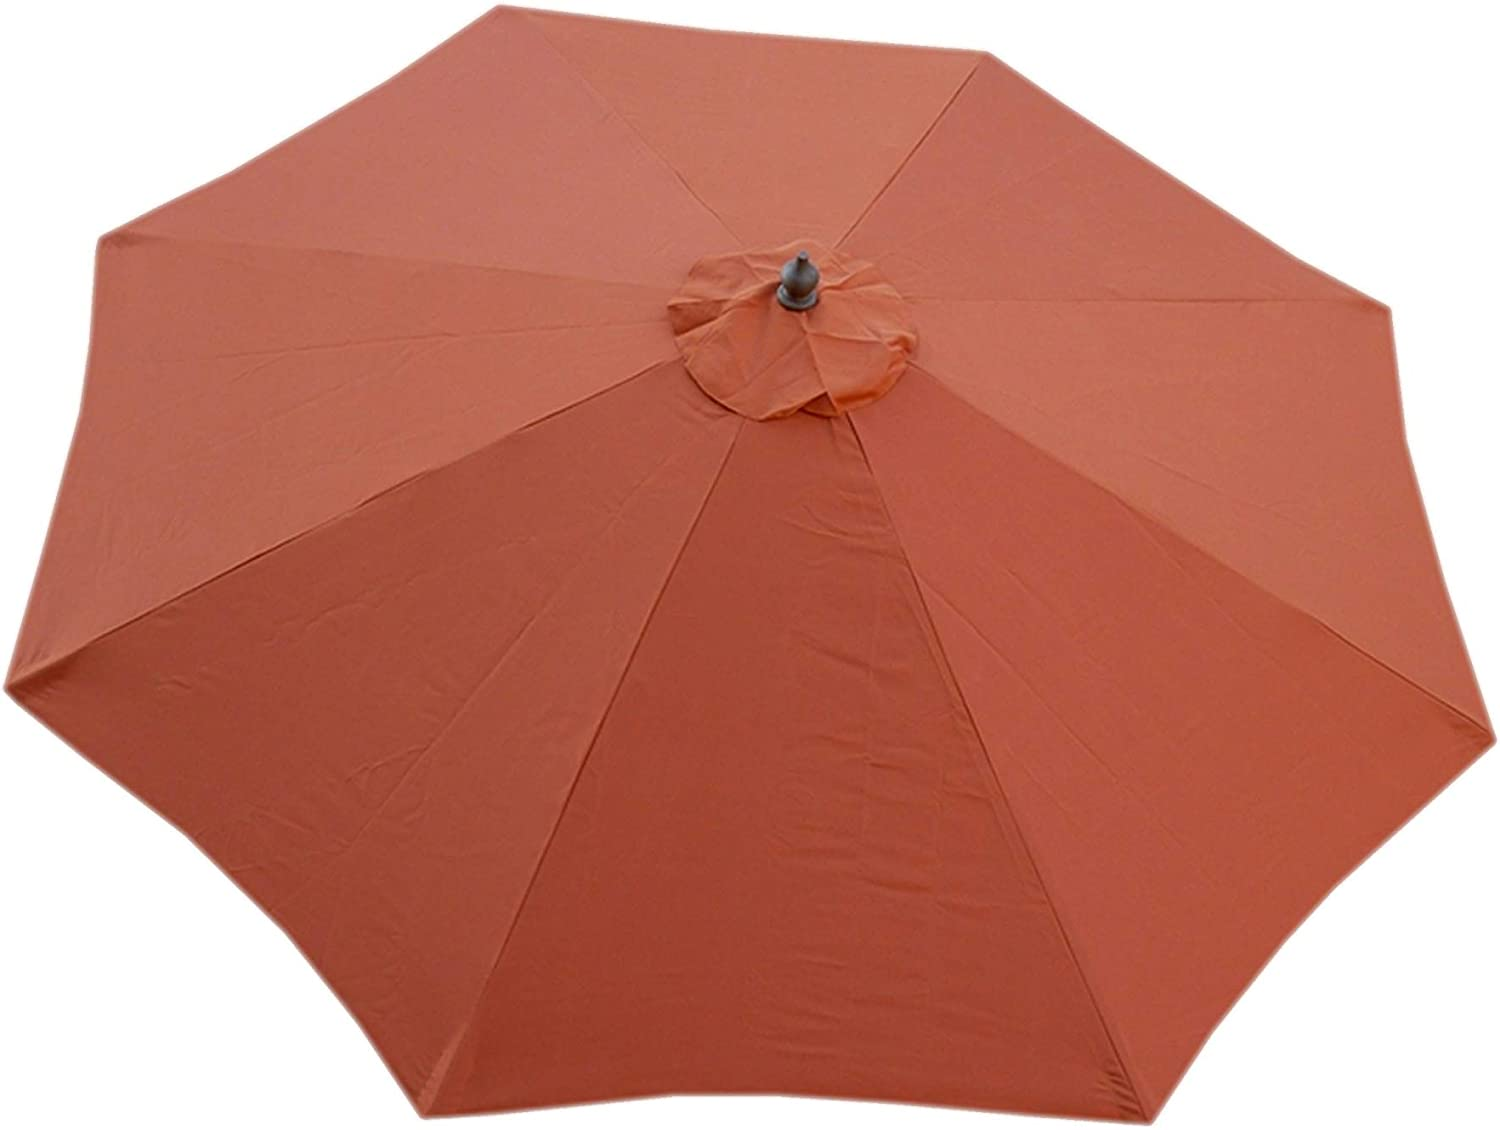 Formosa Covers Replacement Umbrella Canopy for 9ft 8 Ribs Terra Cotta (Canopy Only)